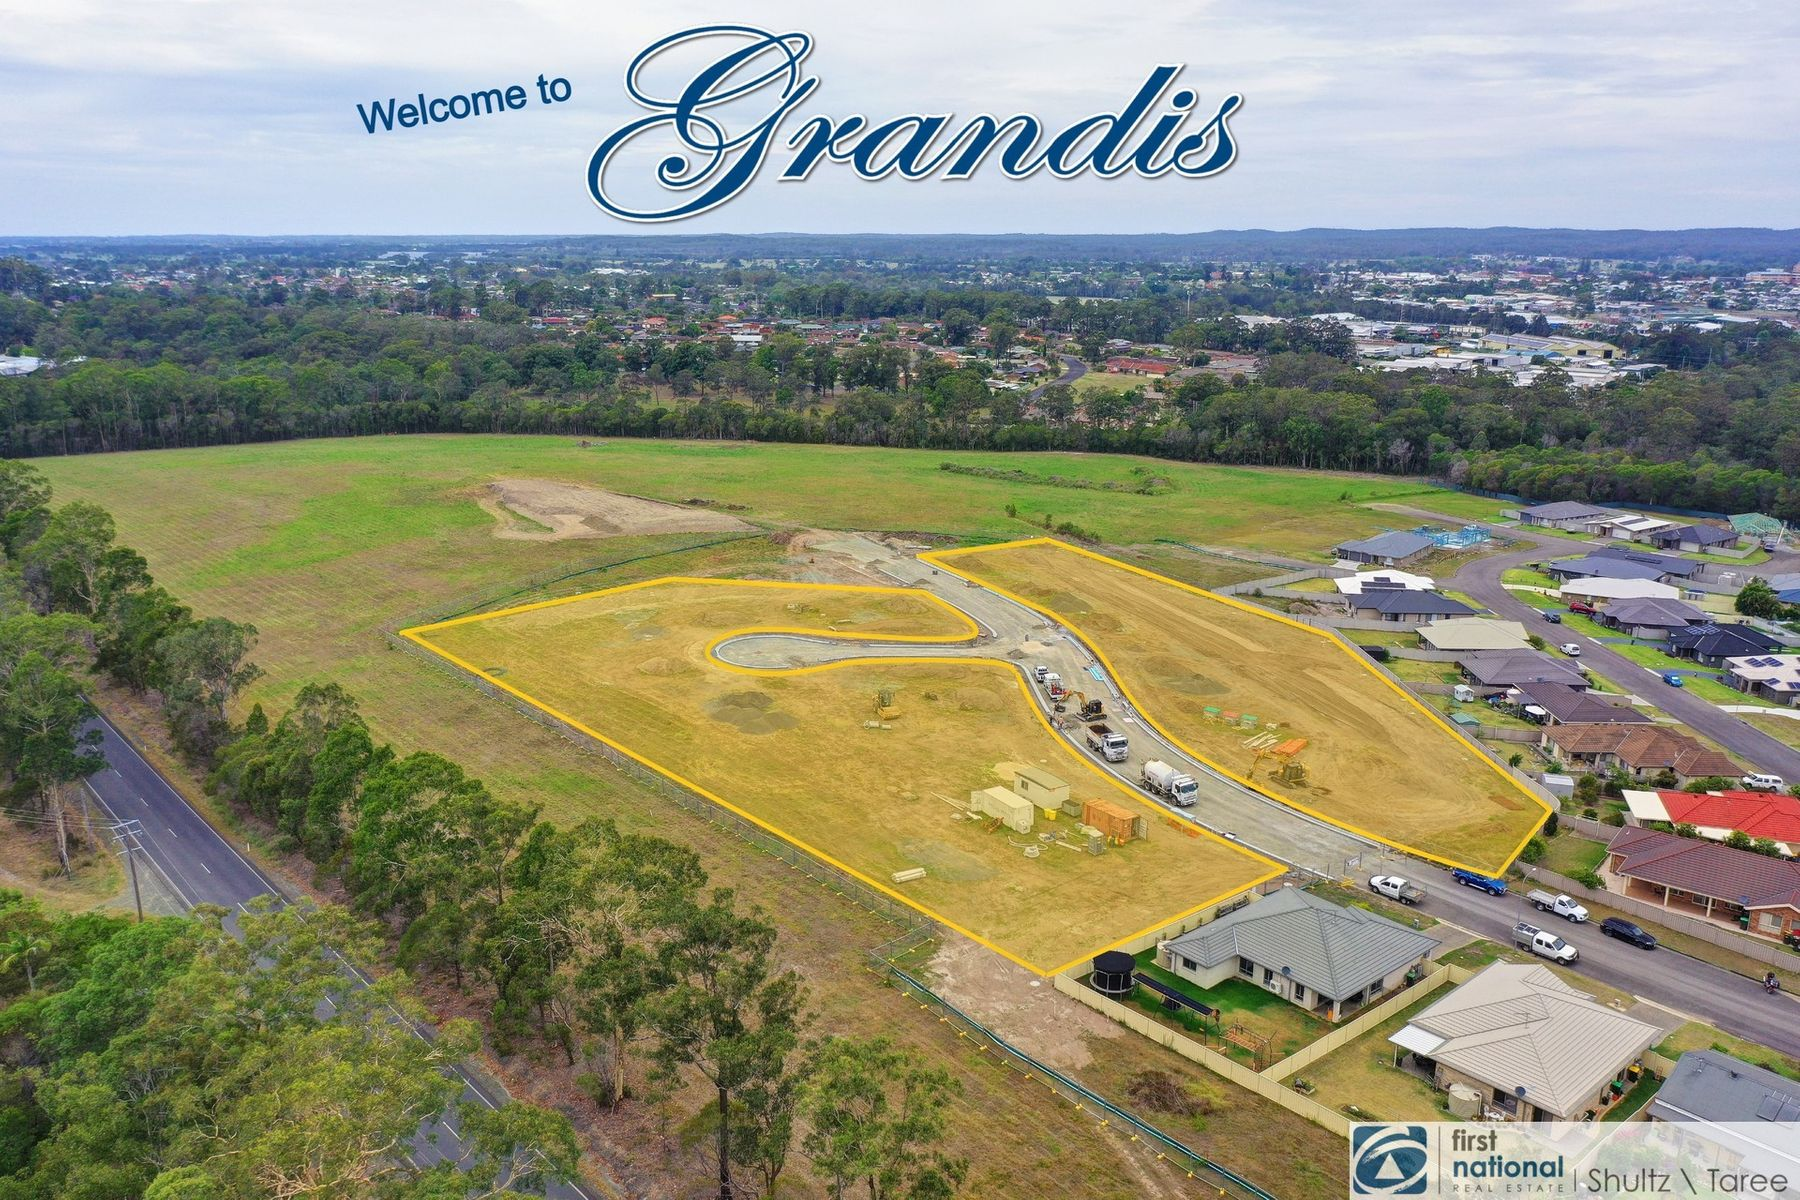 Grandis Parade, Taree, NSW 2430